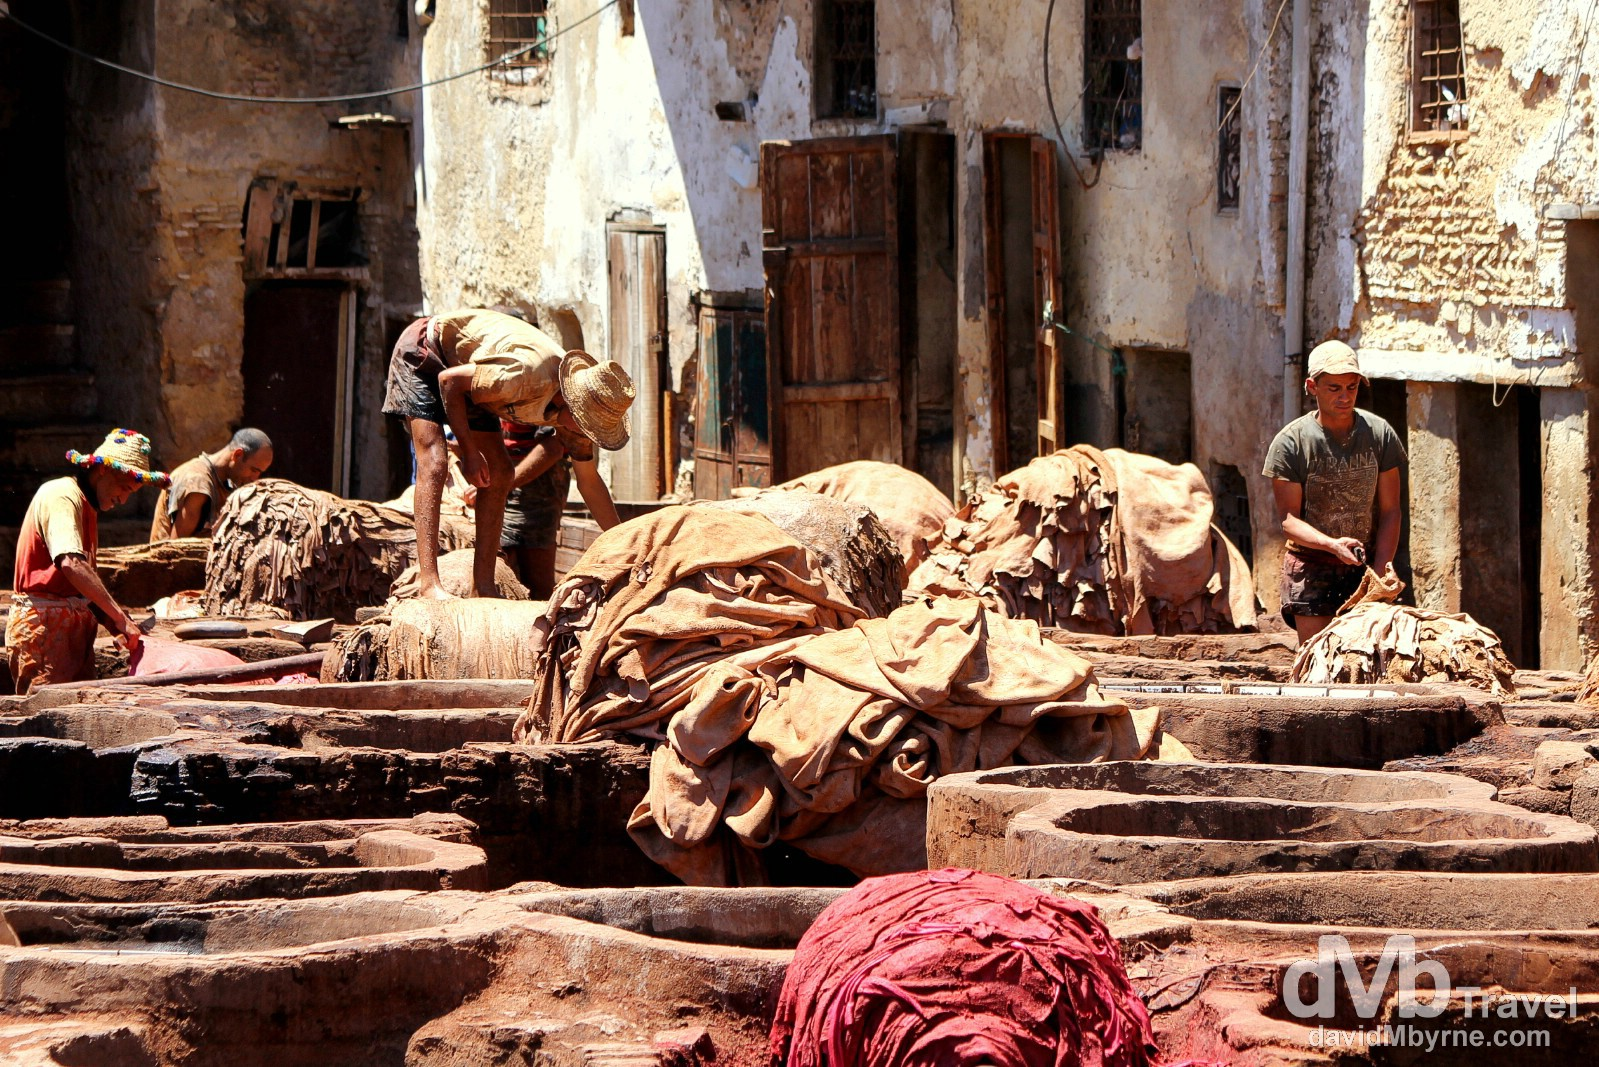 Tanneries Chouwara, Fes el Bali, Fes, Morocco. May 29th, 2014.